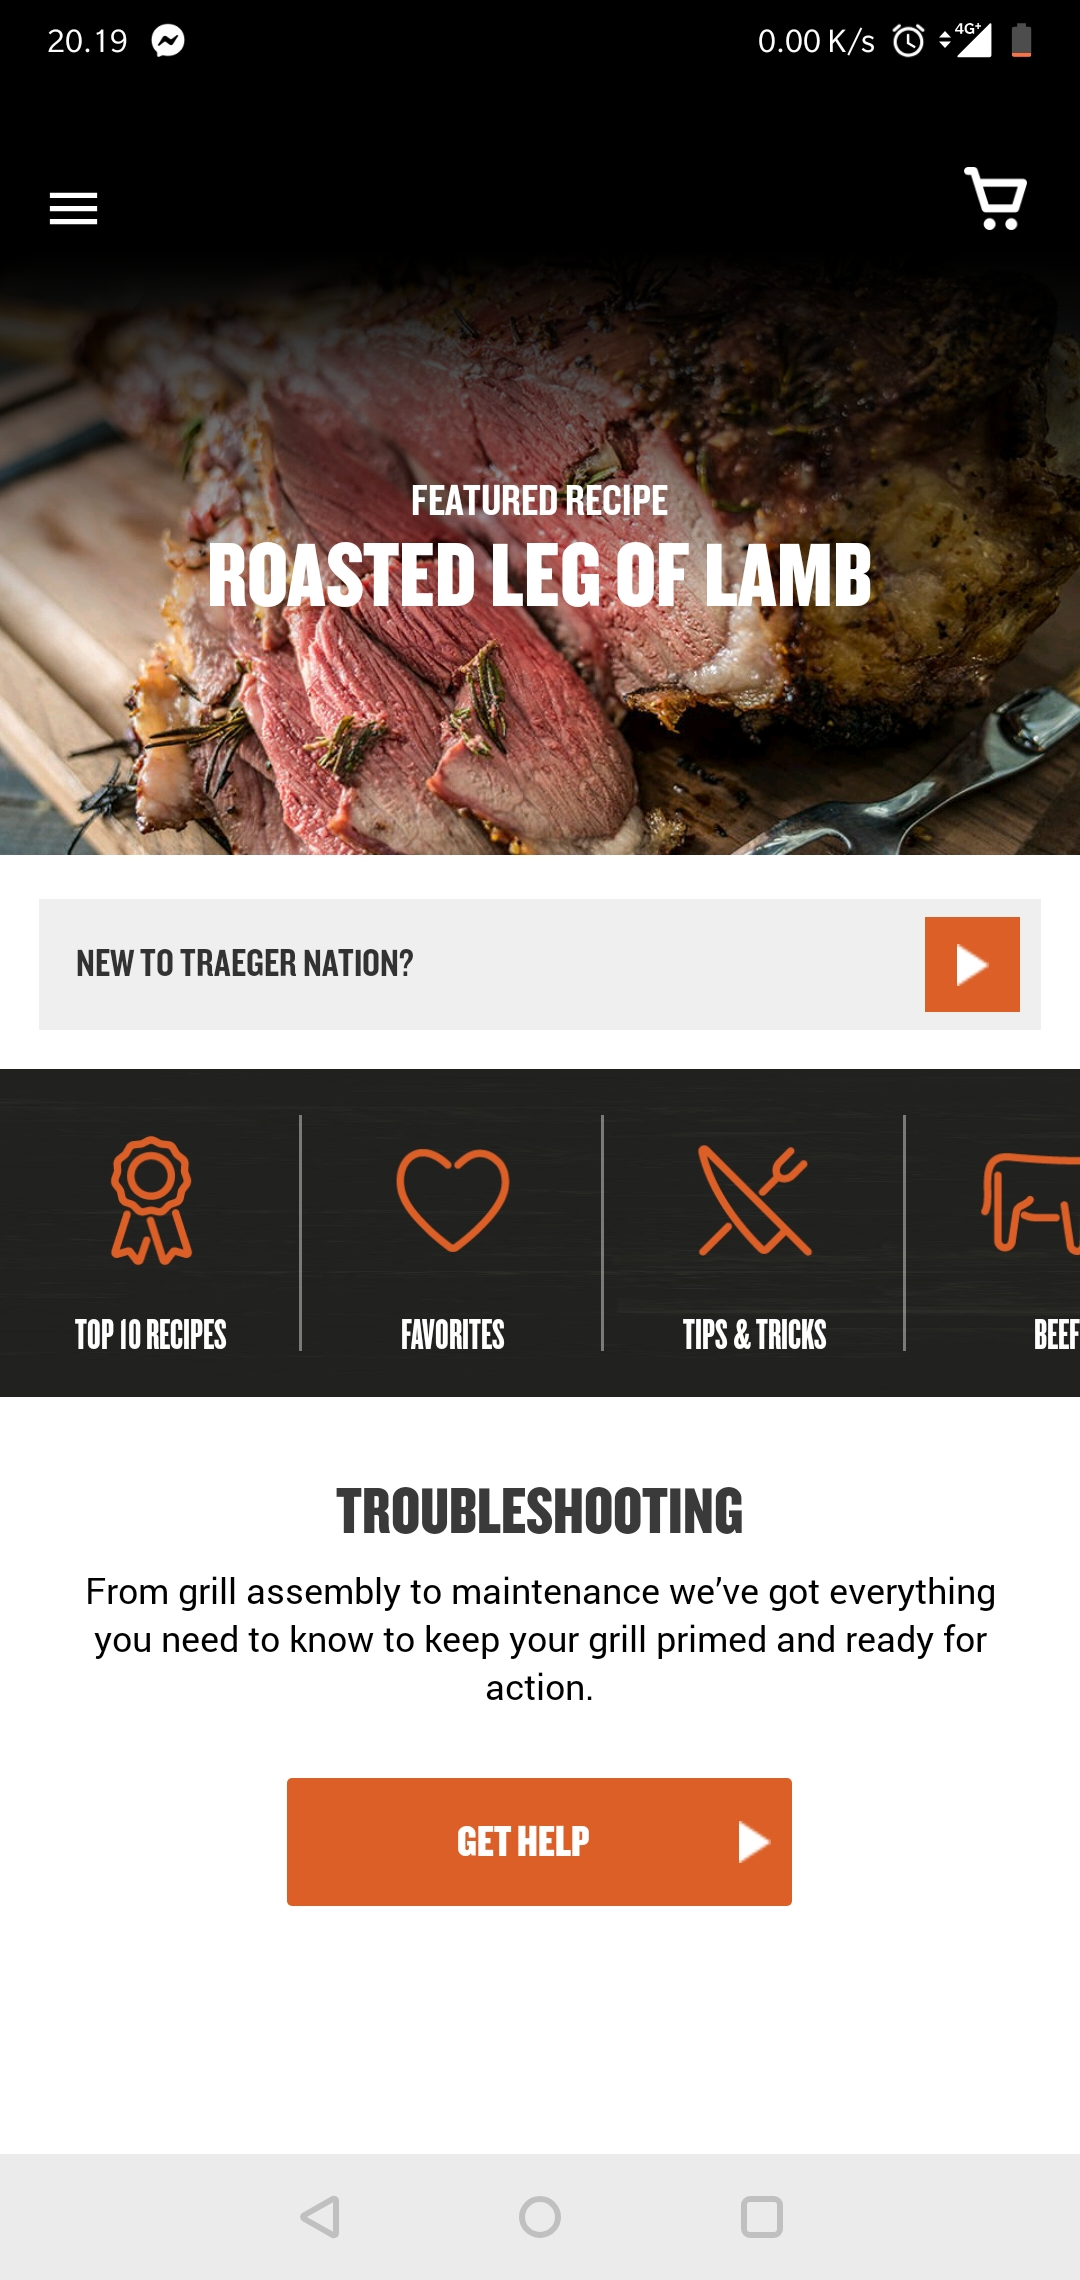 mobile app traeger grill